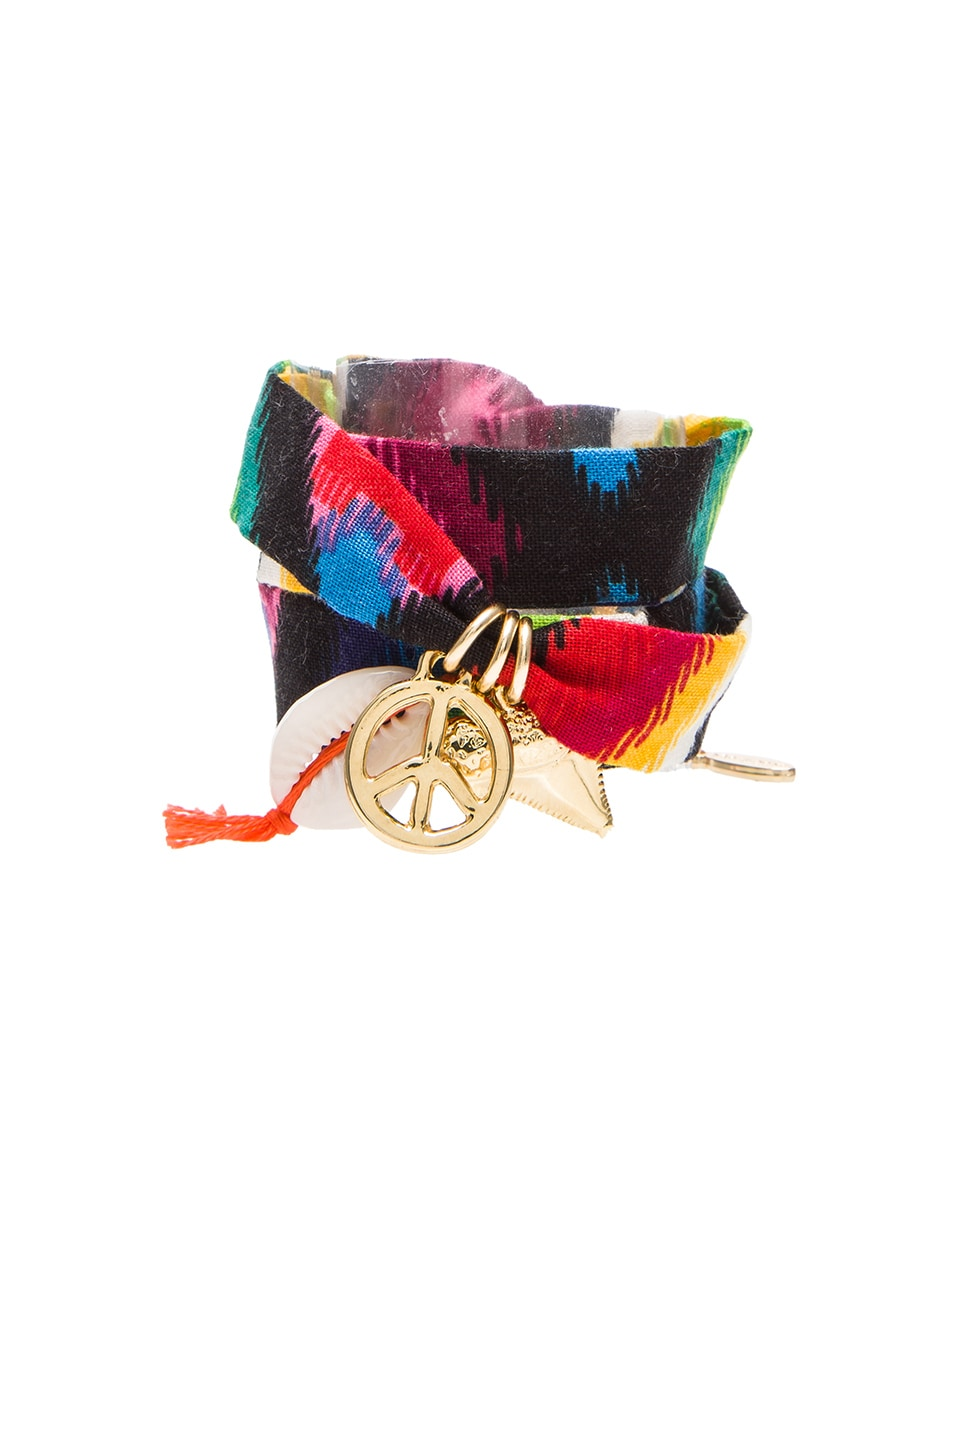 Ettika Guatamala Fabric Wrap Friendship Bracelet in Multi